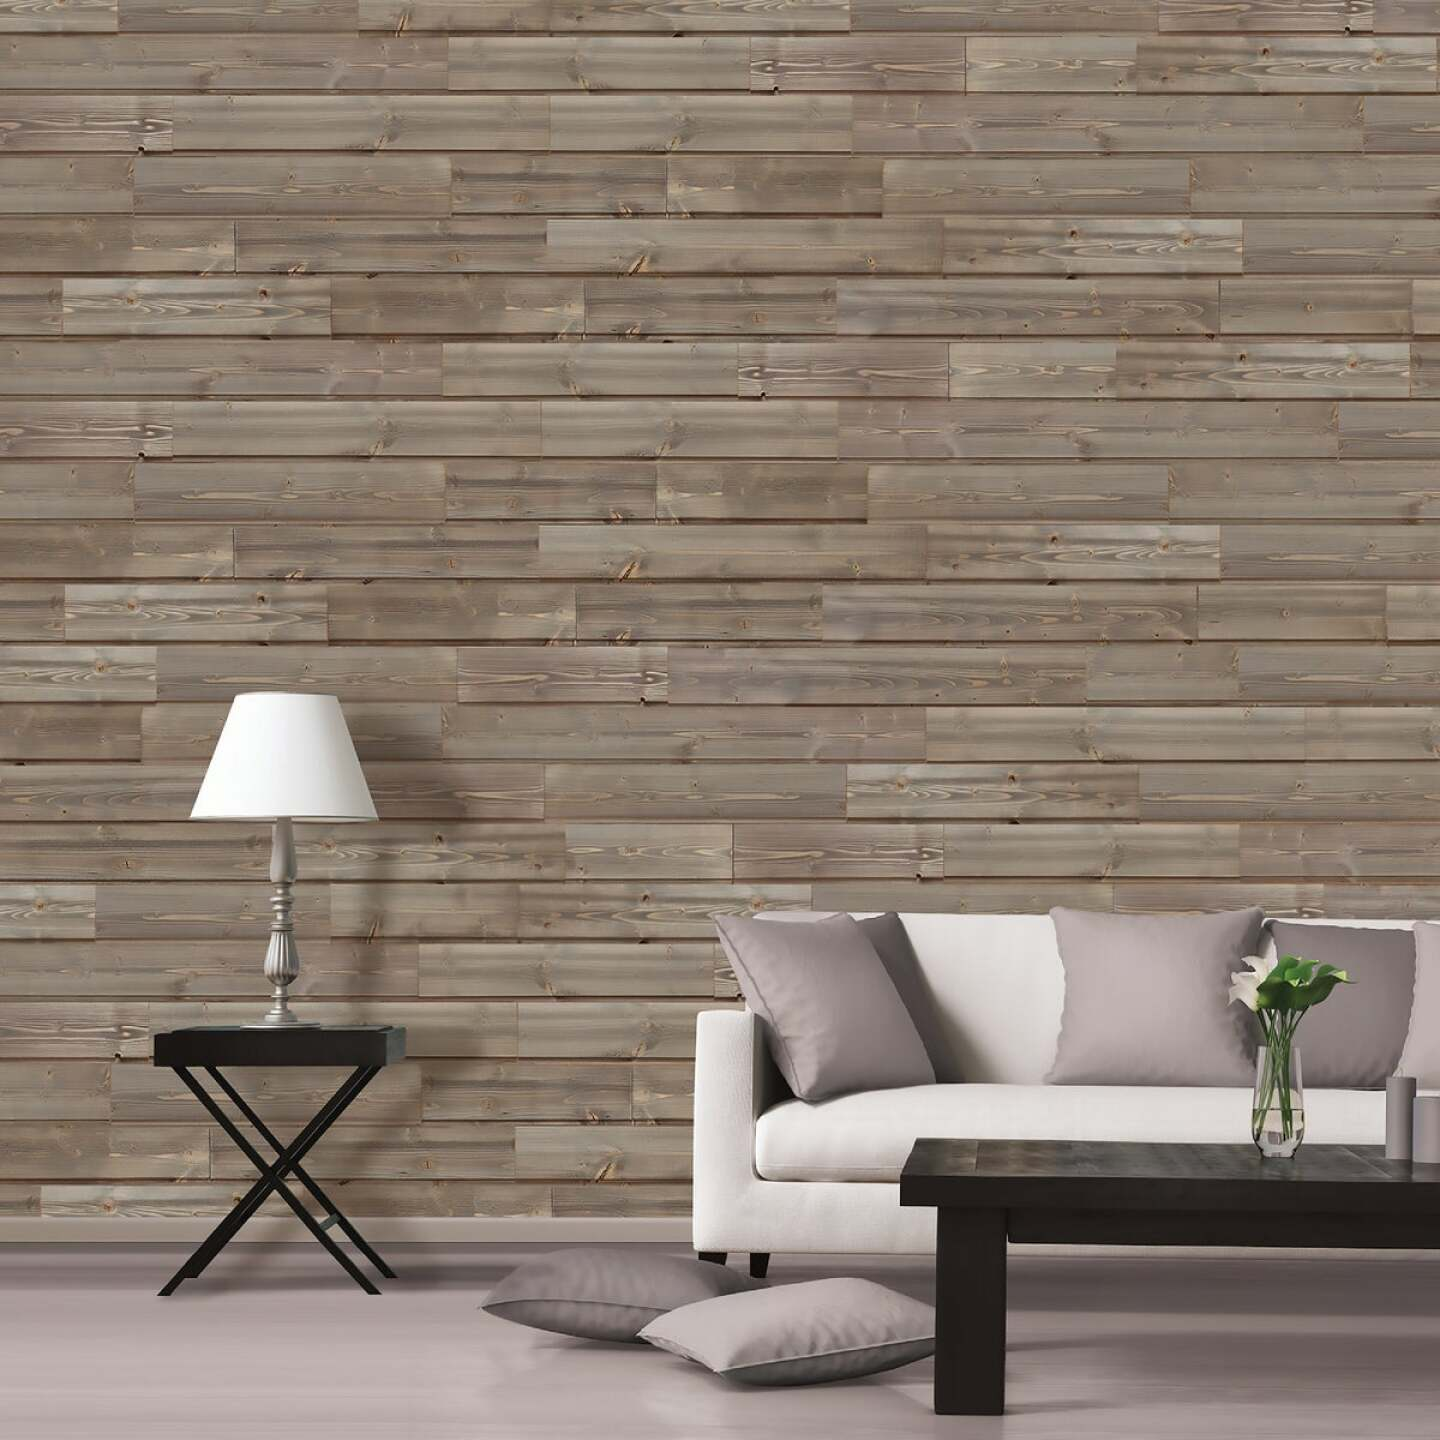 Global Product Sourcing 5.375 In W. x 5/16 In. Thick Gray Reclaimed Wood Shiplap Board Image 2